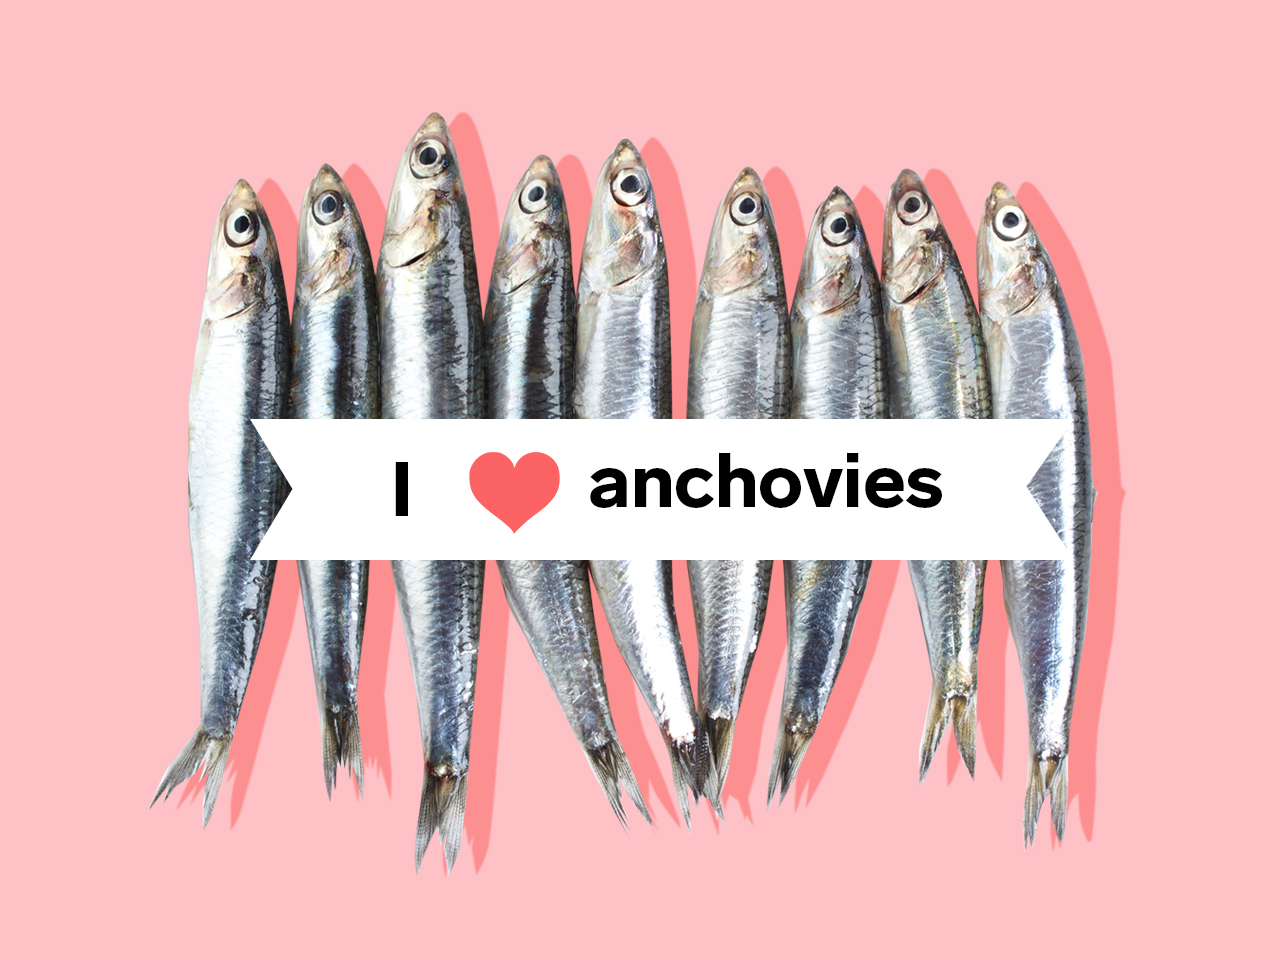 Anchovies lined up in a row with banner stating I (heart) anchovies across